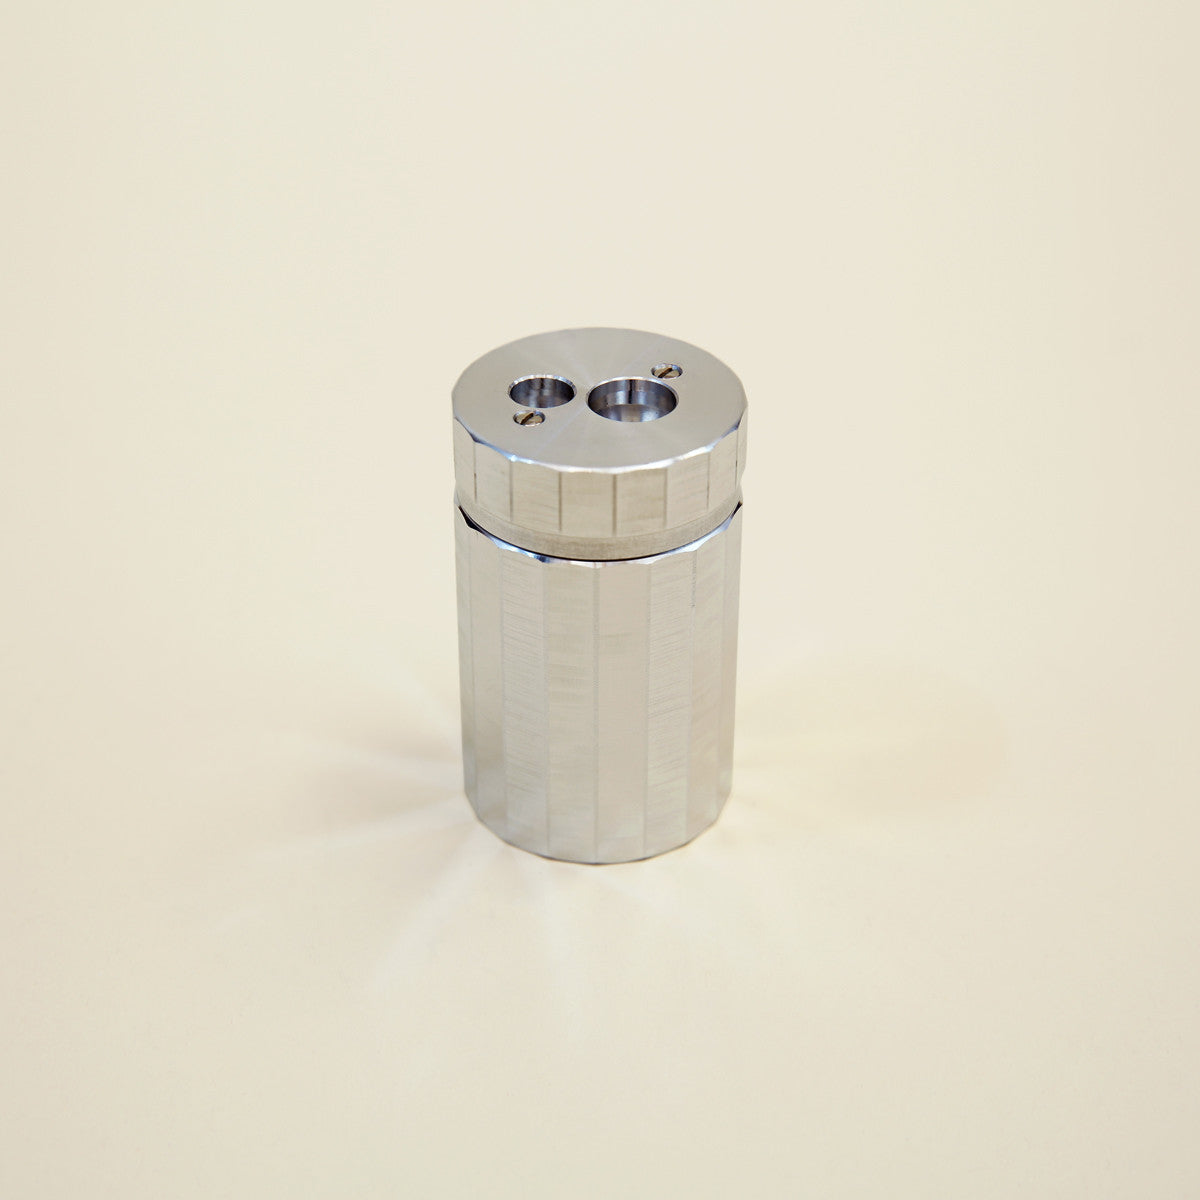 Aluminum Pencil Sharpener